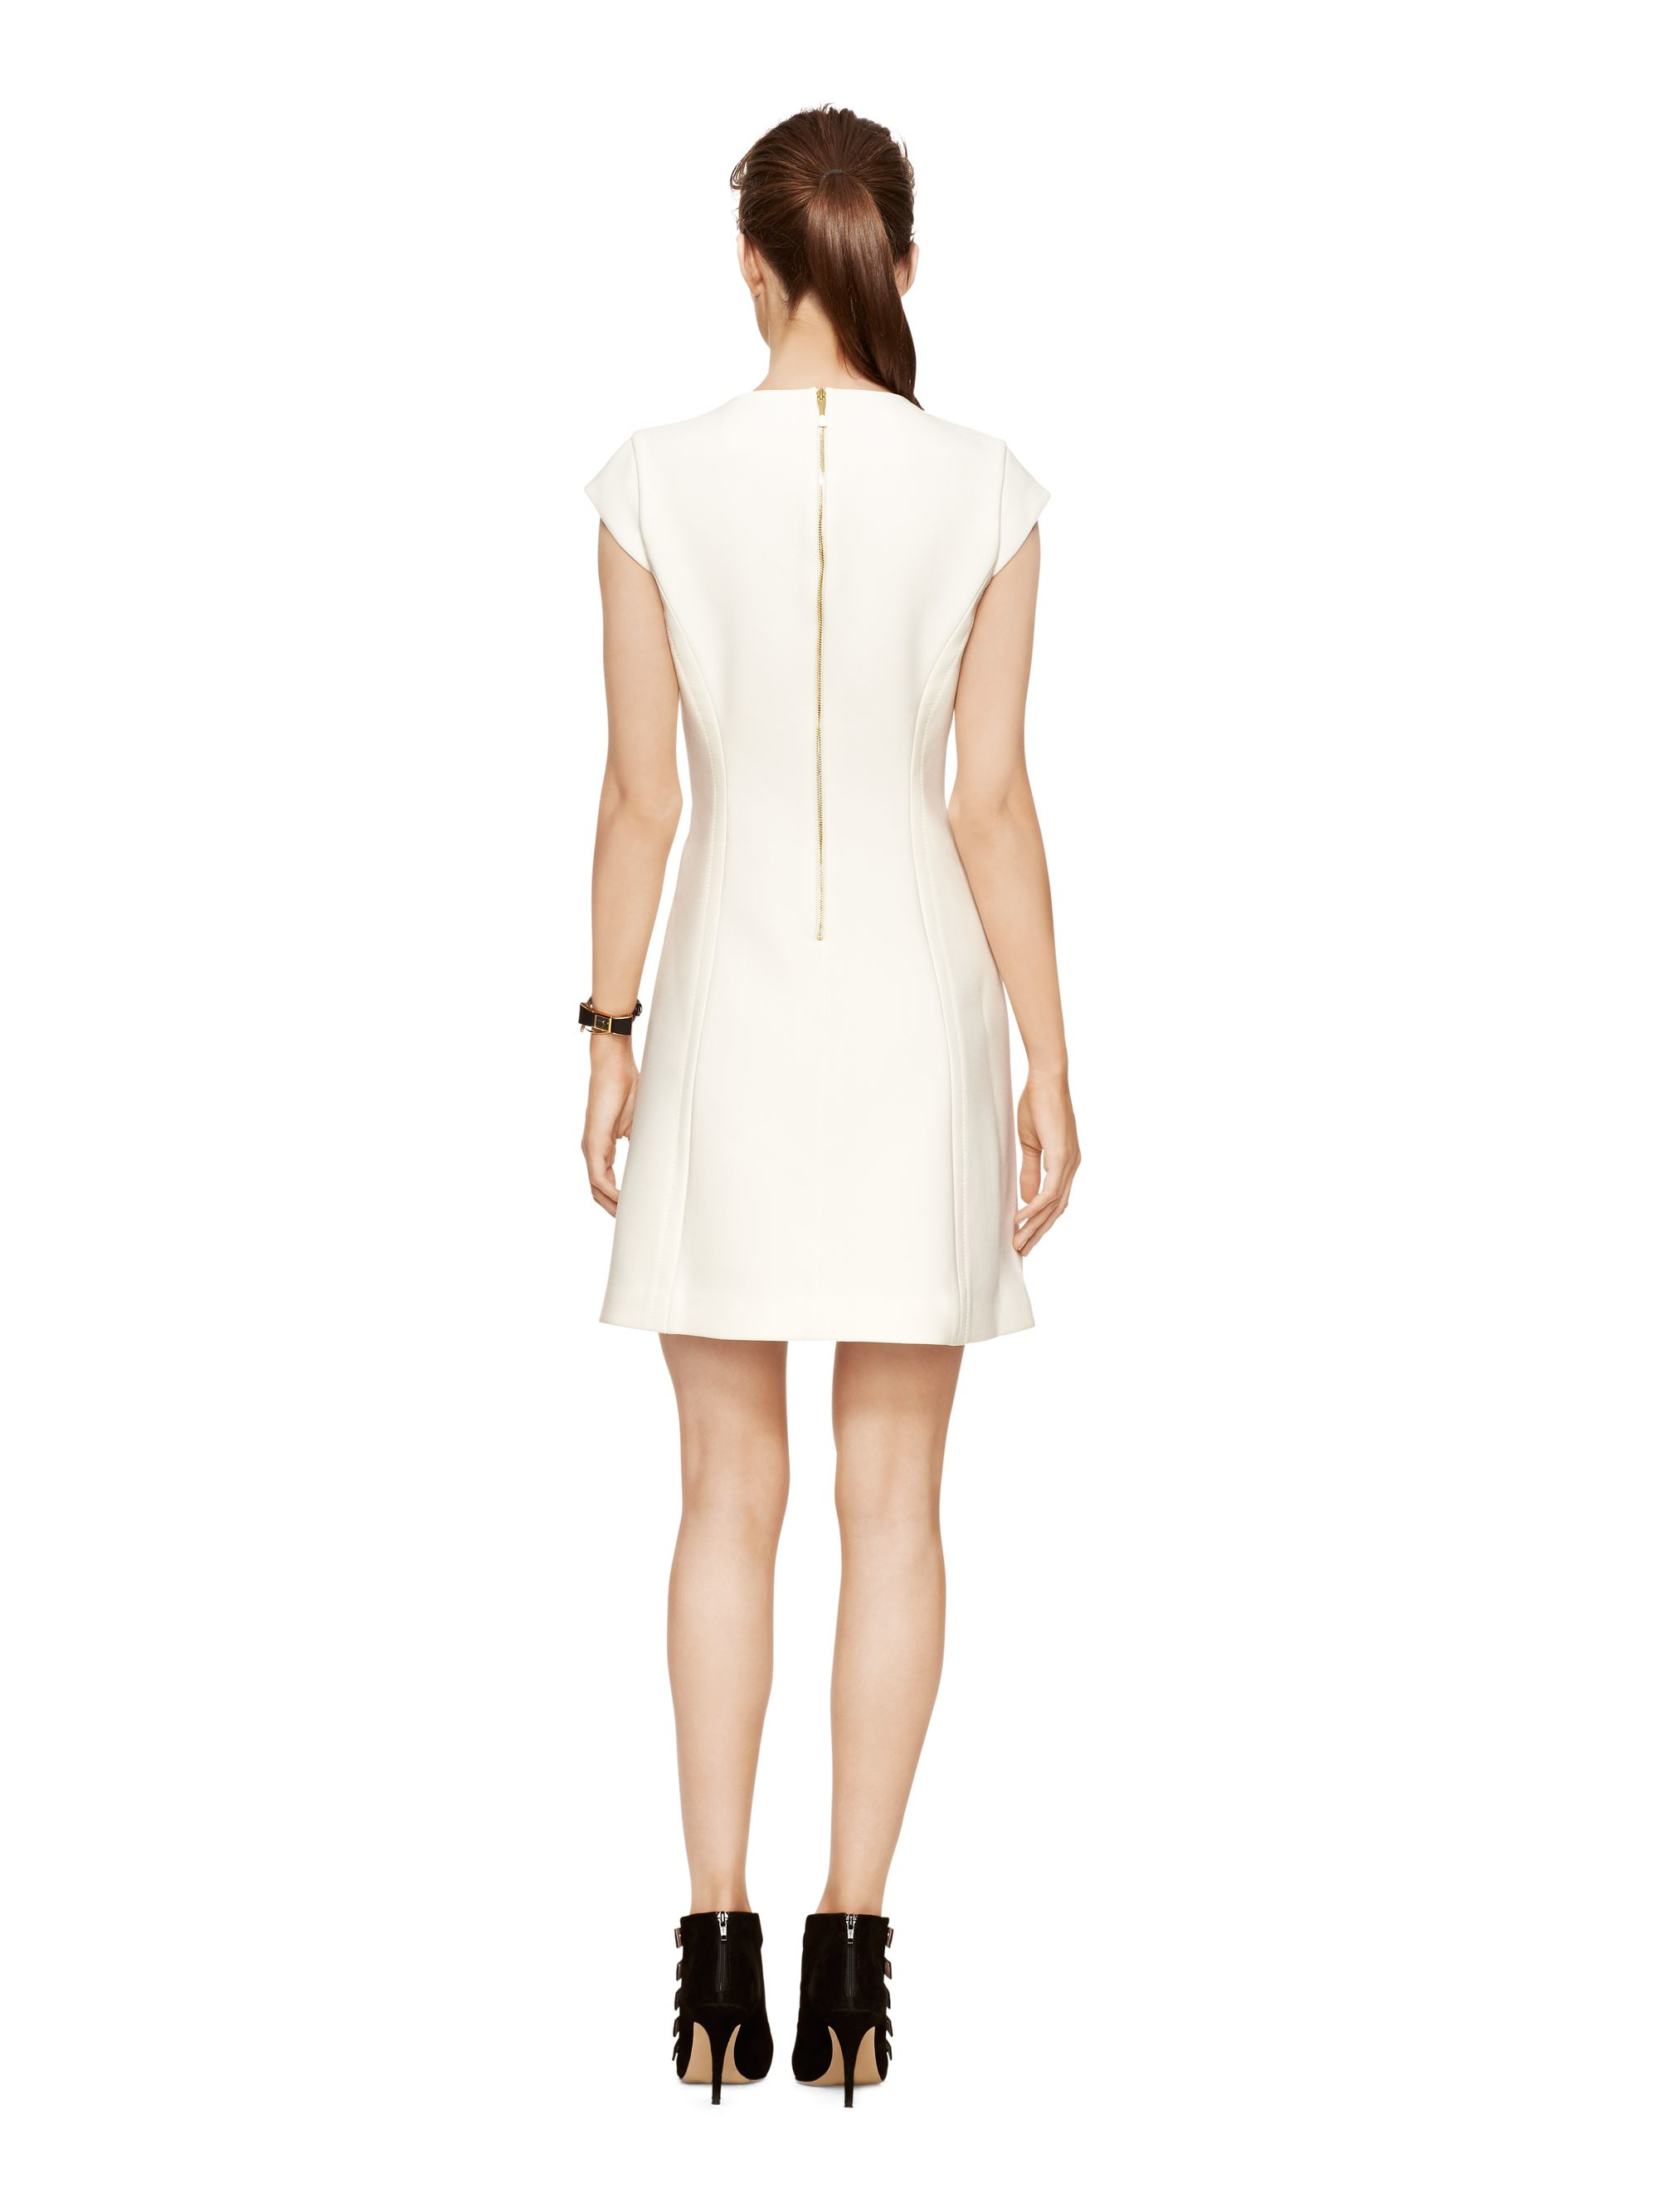 Kate Spade Bow Back Dress